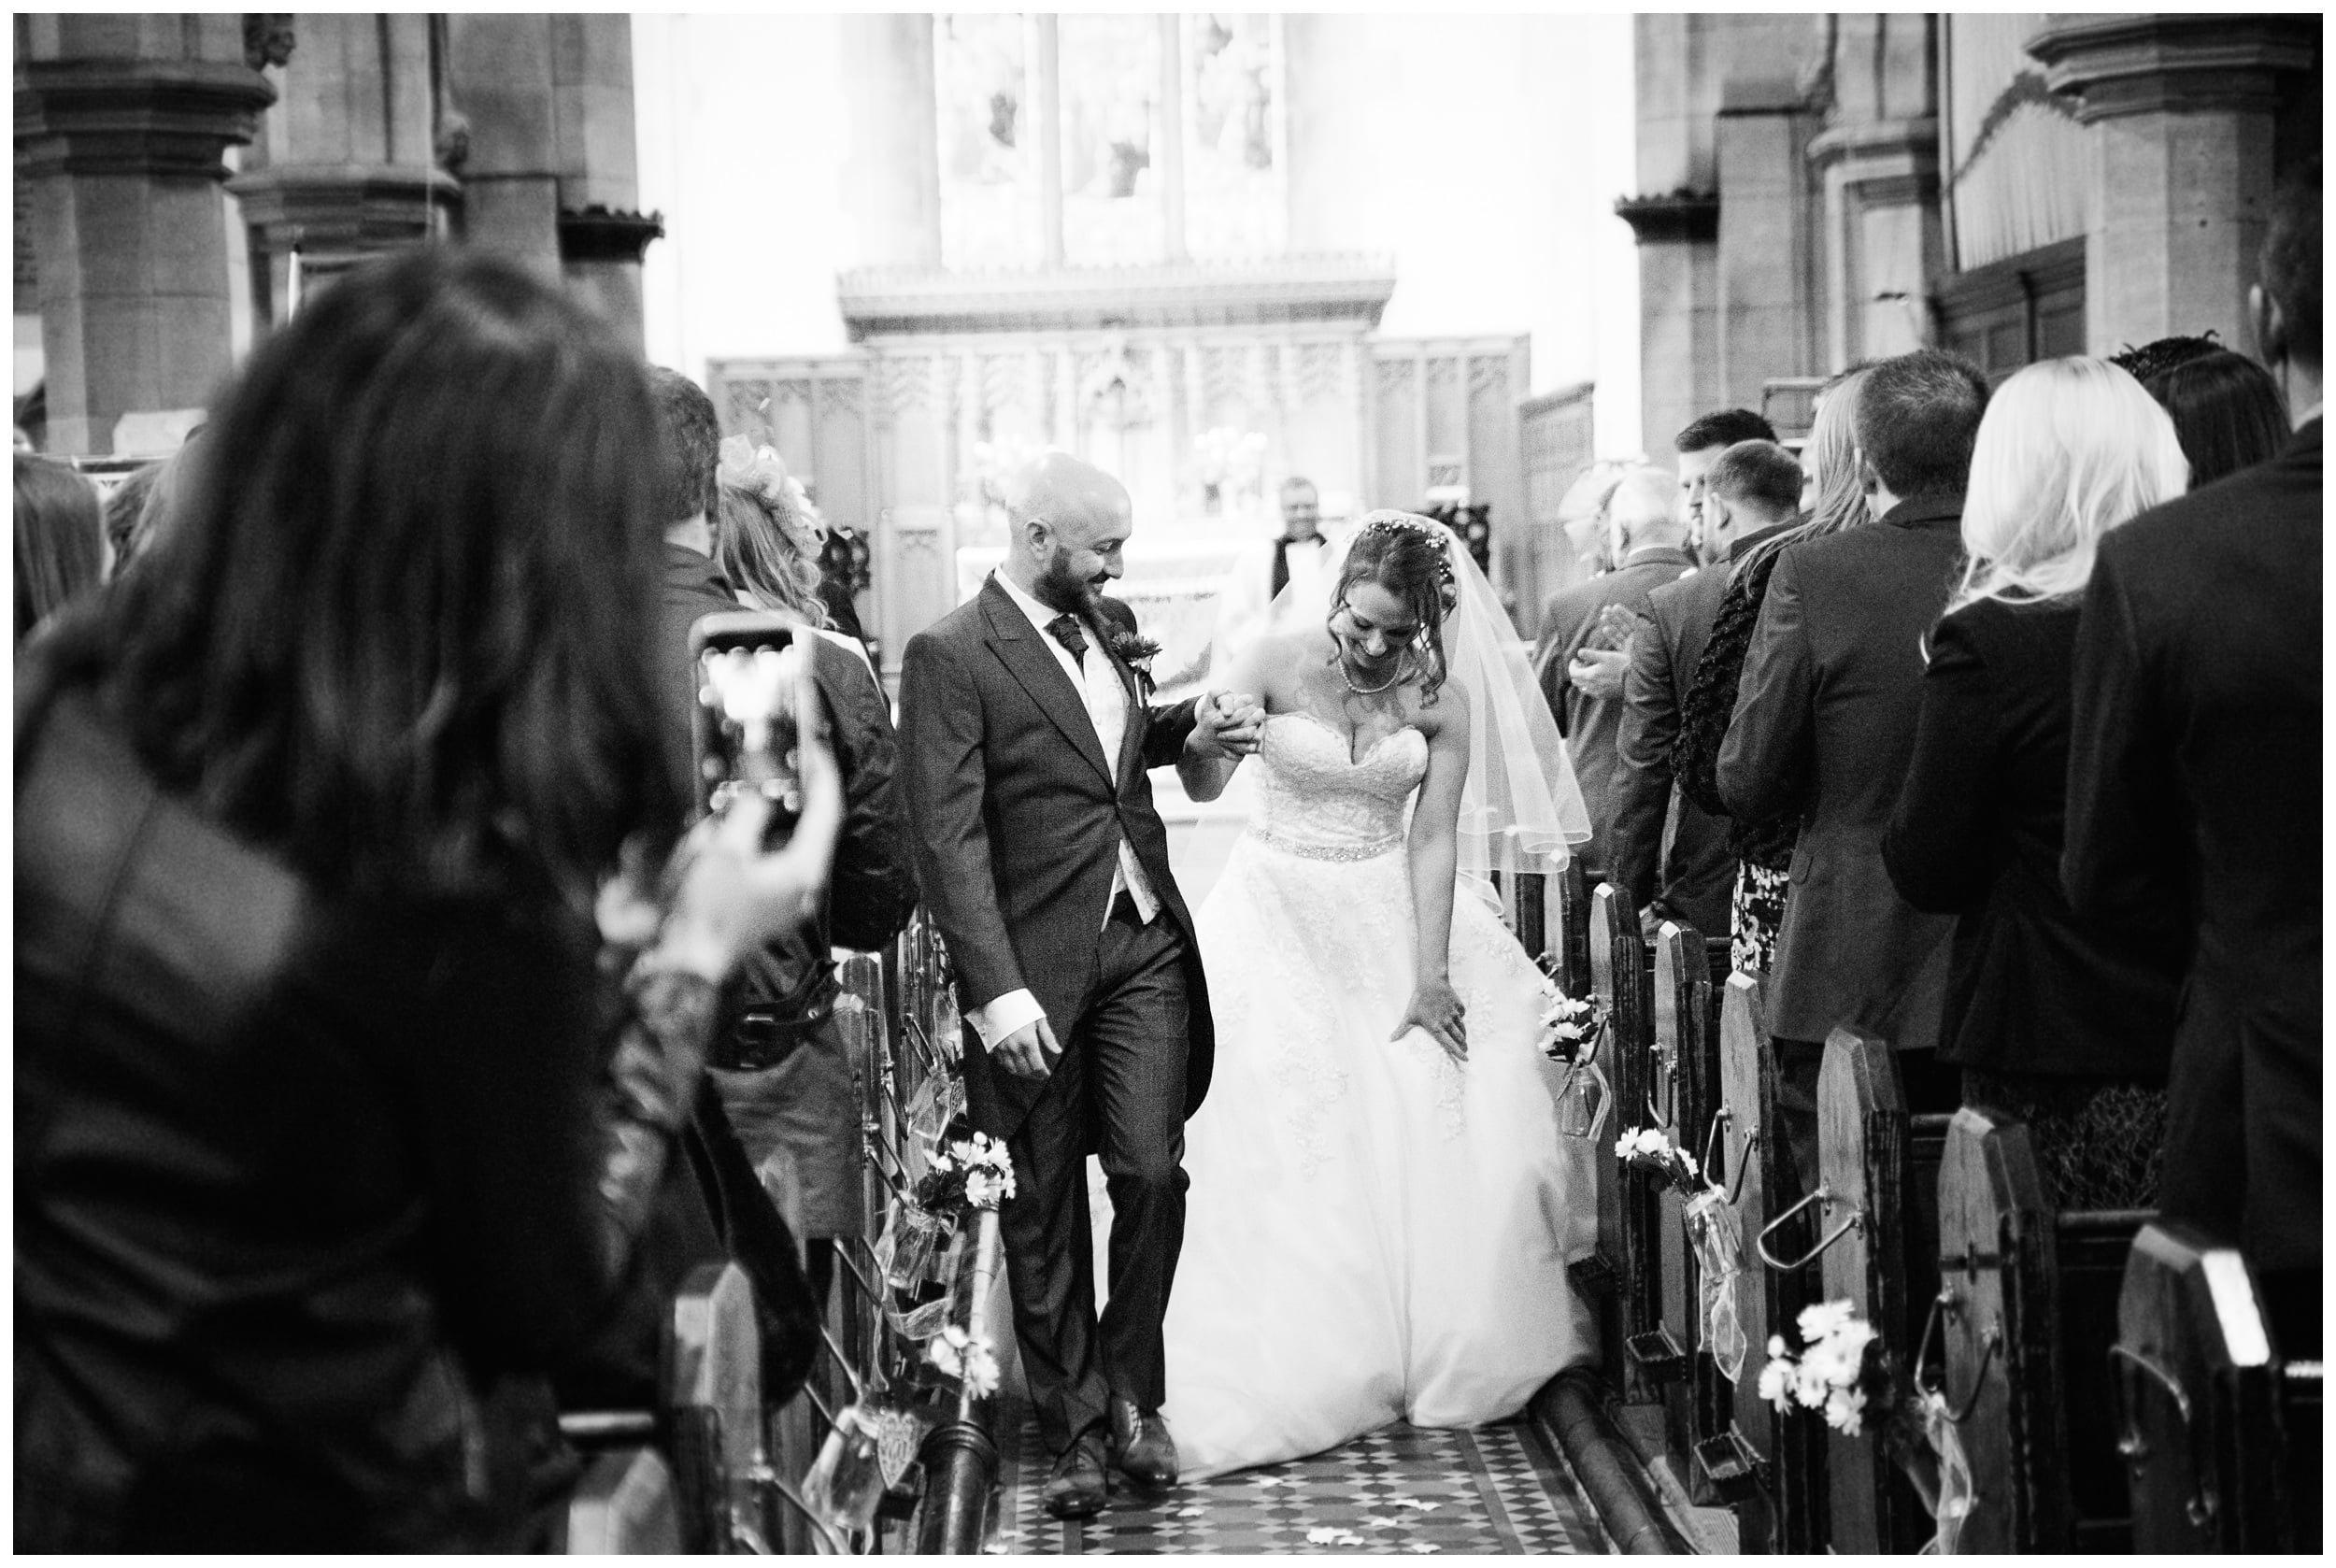 Stunning black and white picture of Bride and groom walking down the church aisle while guest cheer